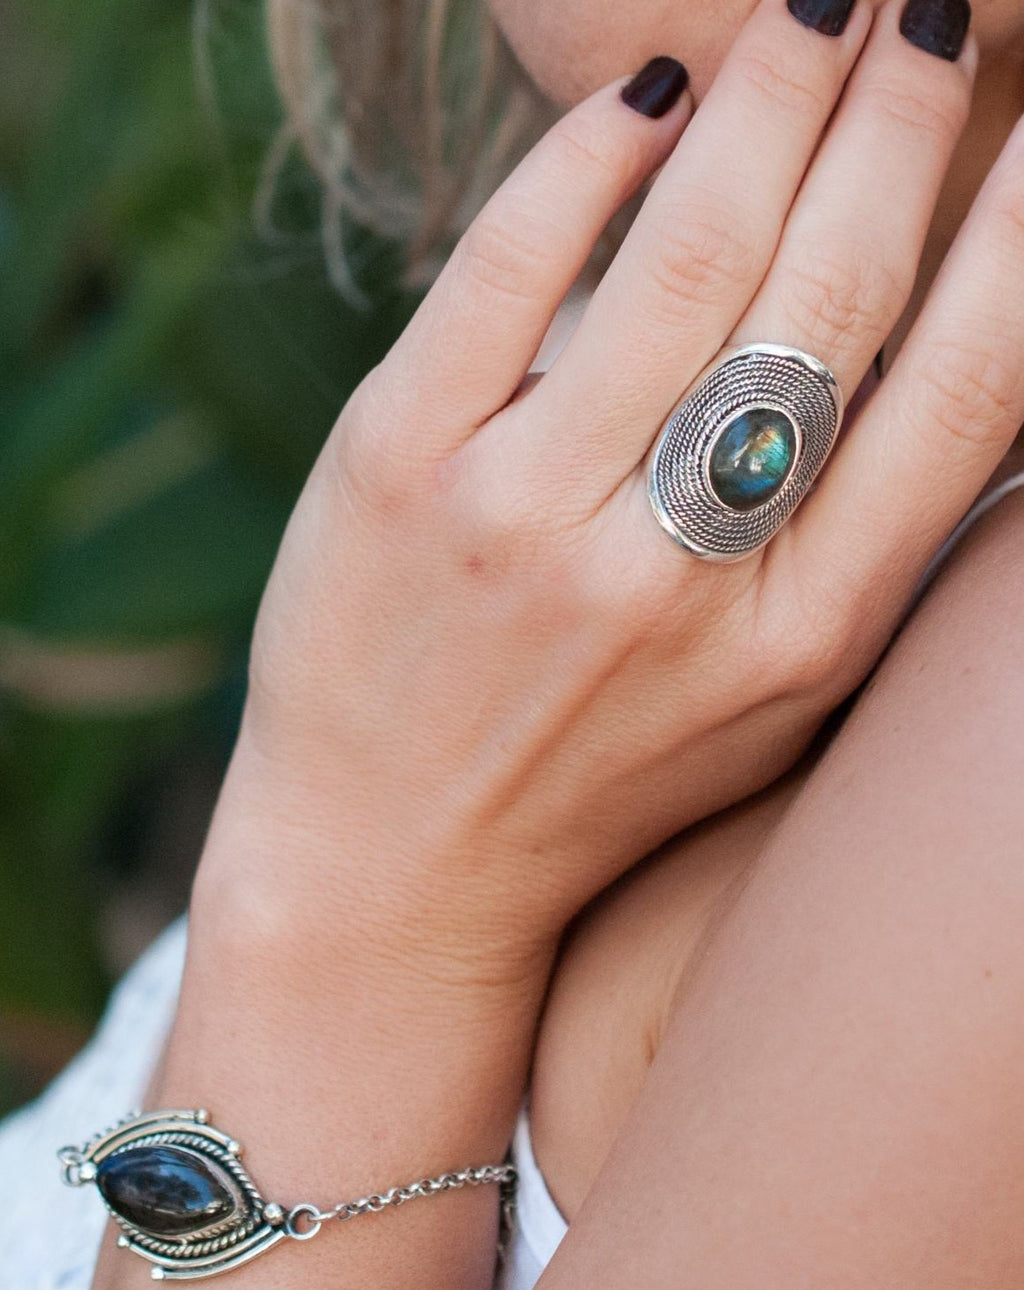 Labradorite Ring * Sterling Silver 925 * Statement * Gemstone * Designed Band *Bycila *Jewelry * Handmade *February *March Birthstone BJR198